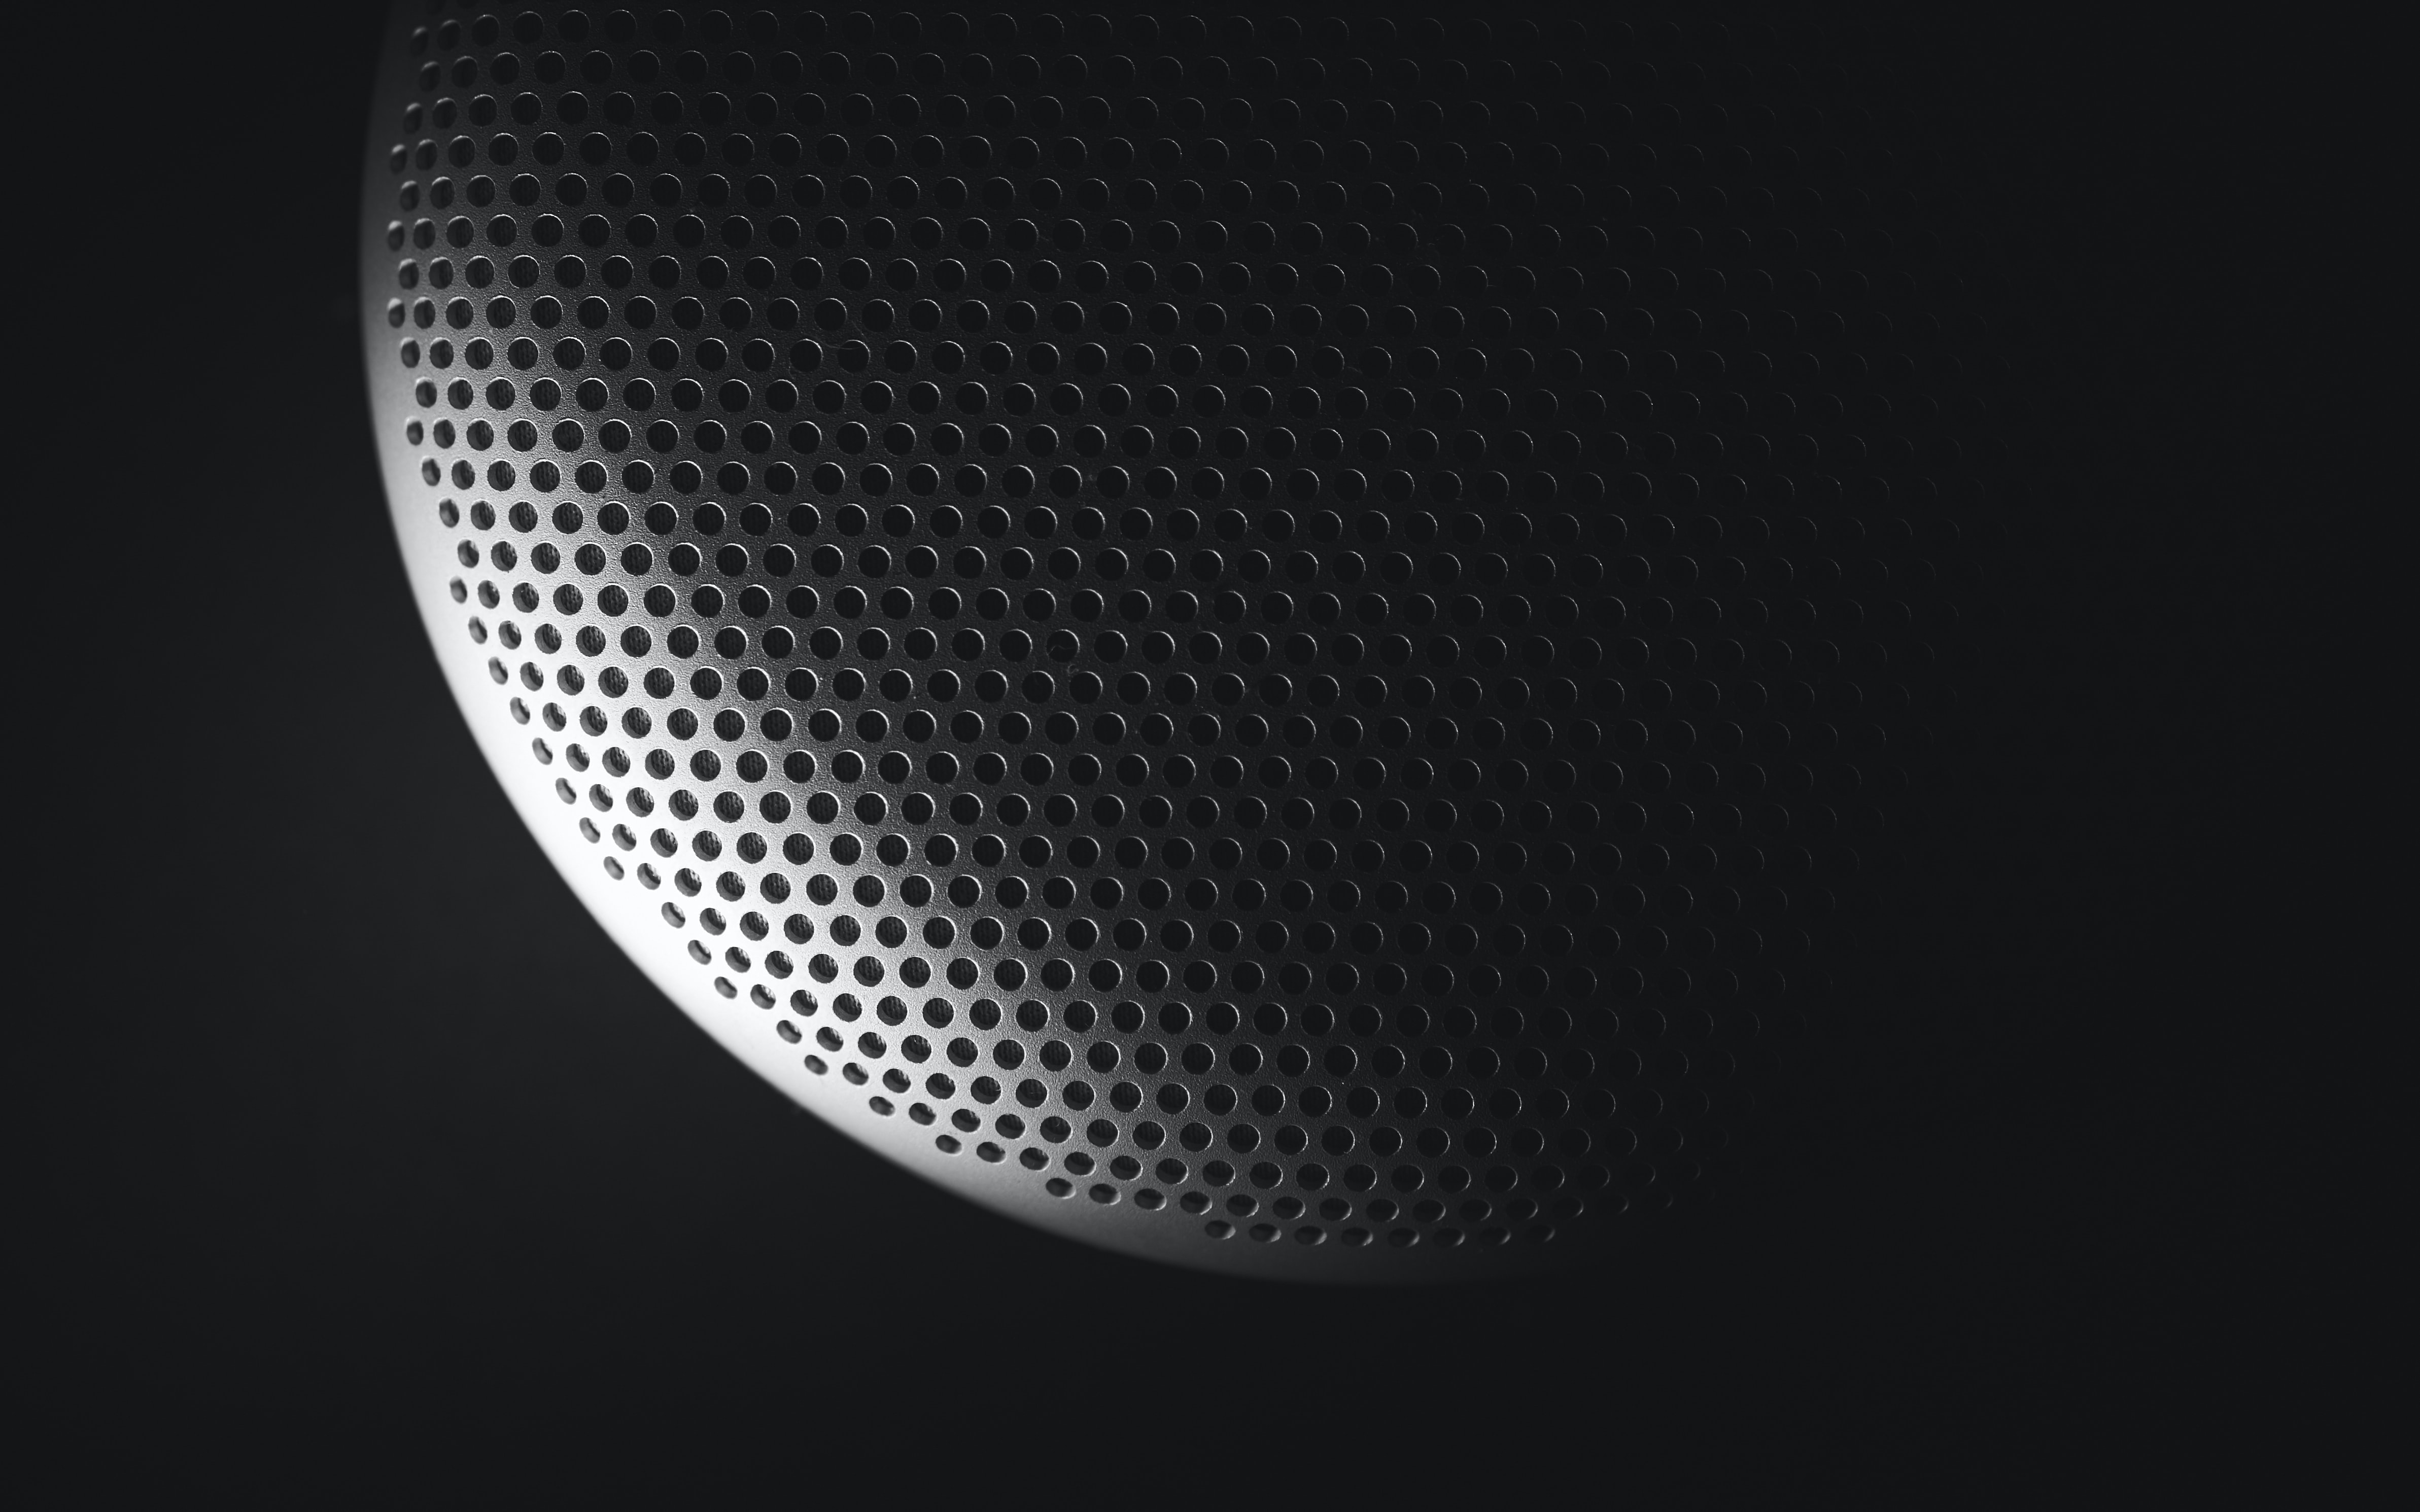 Black and white macro of digital dots on speaker or microphone, Province of Cremona